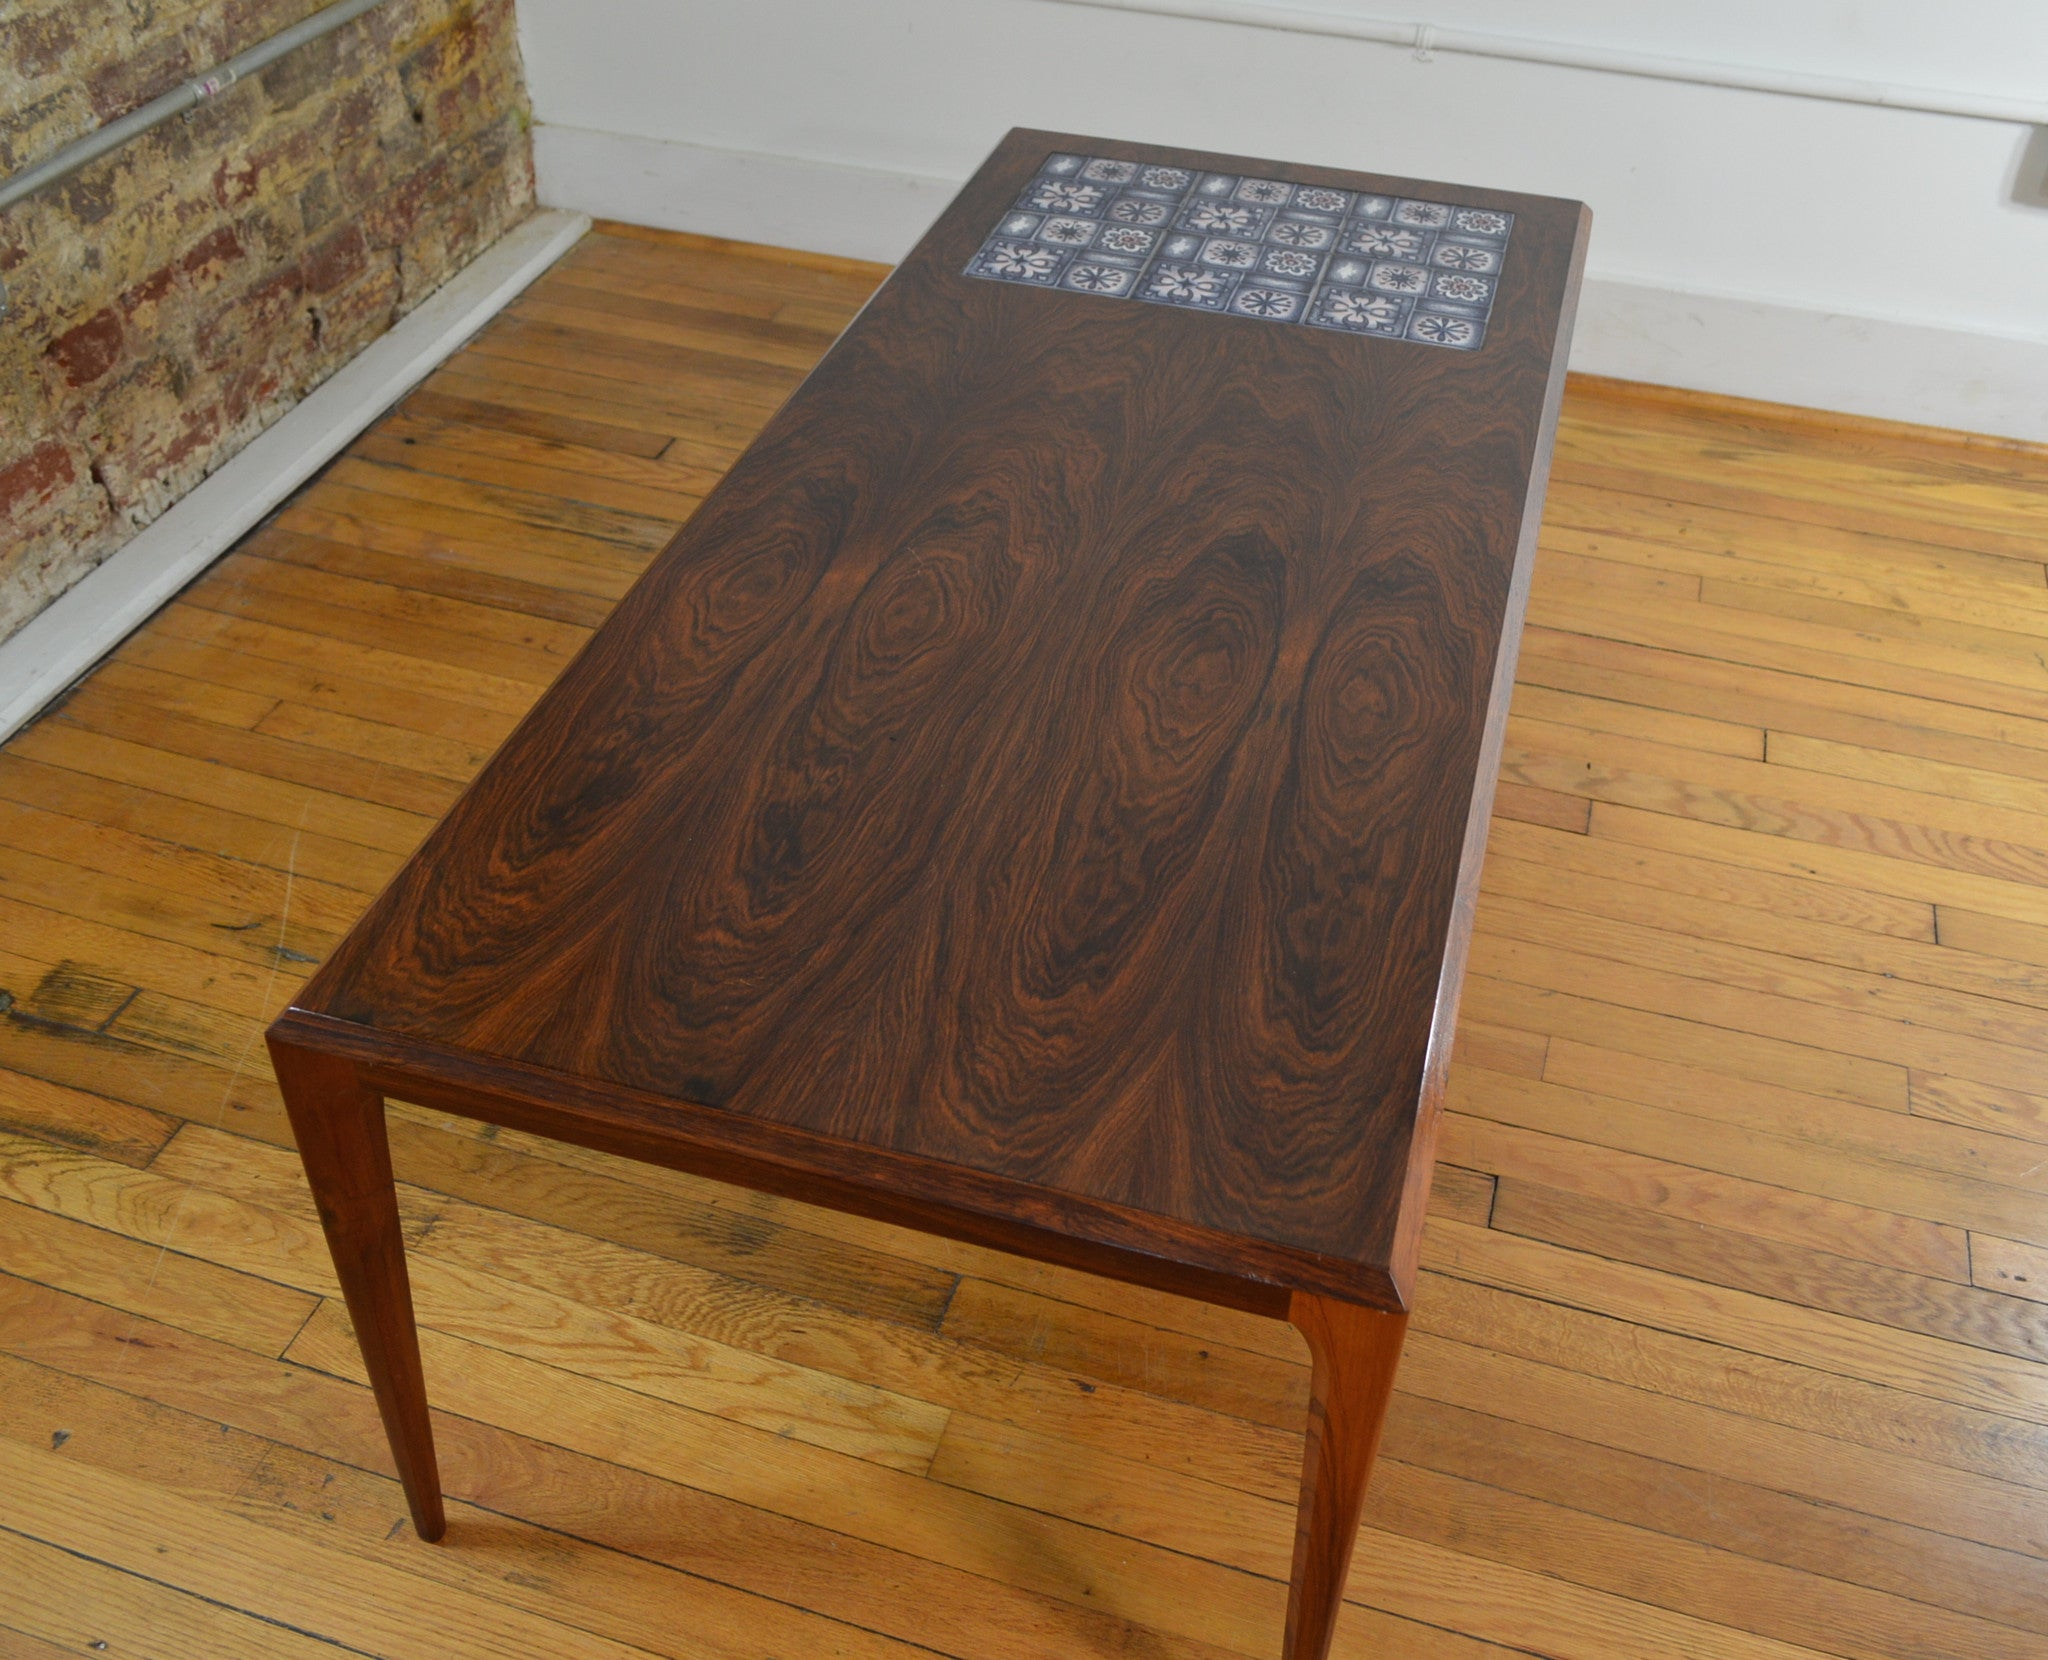 Rosewood And Tile Coffee Table By Johannes Andersen With Royal Copenhagen  Tiles